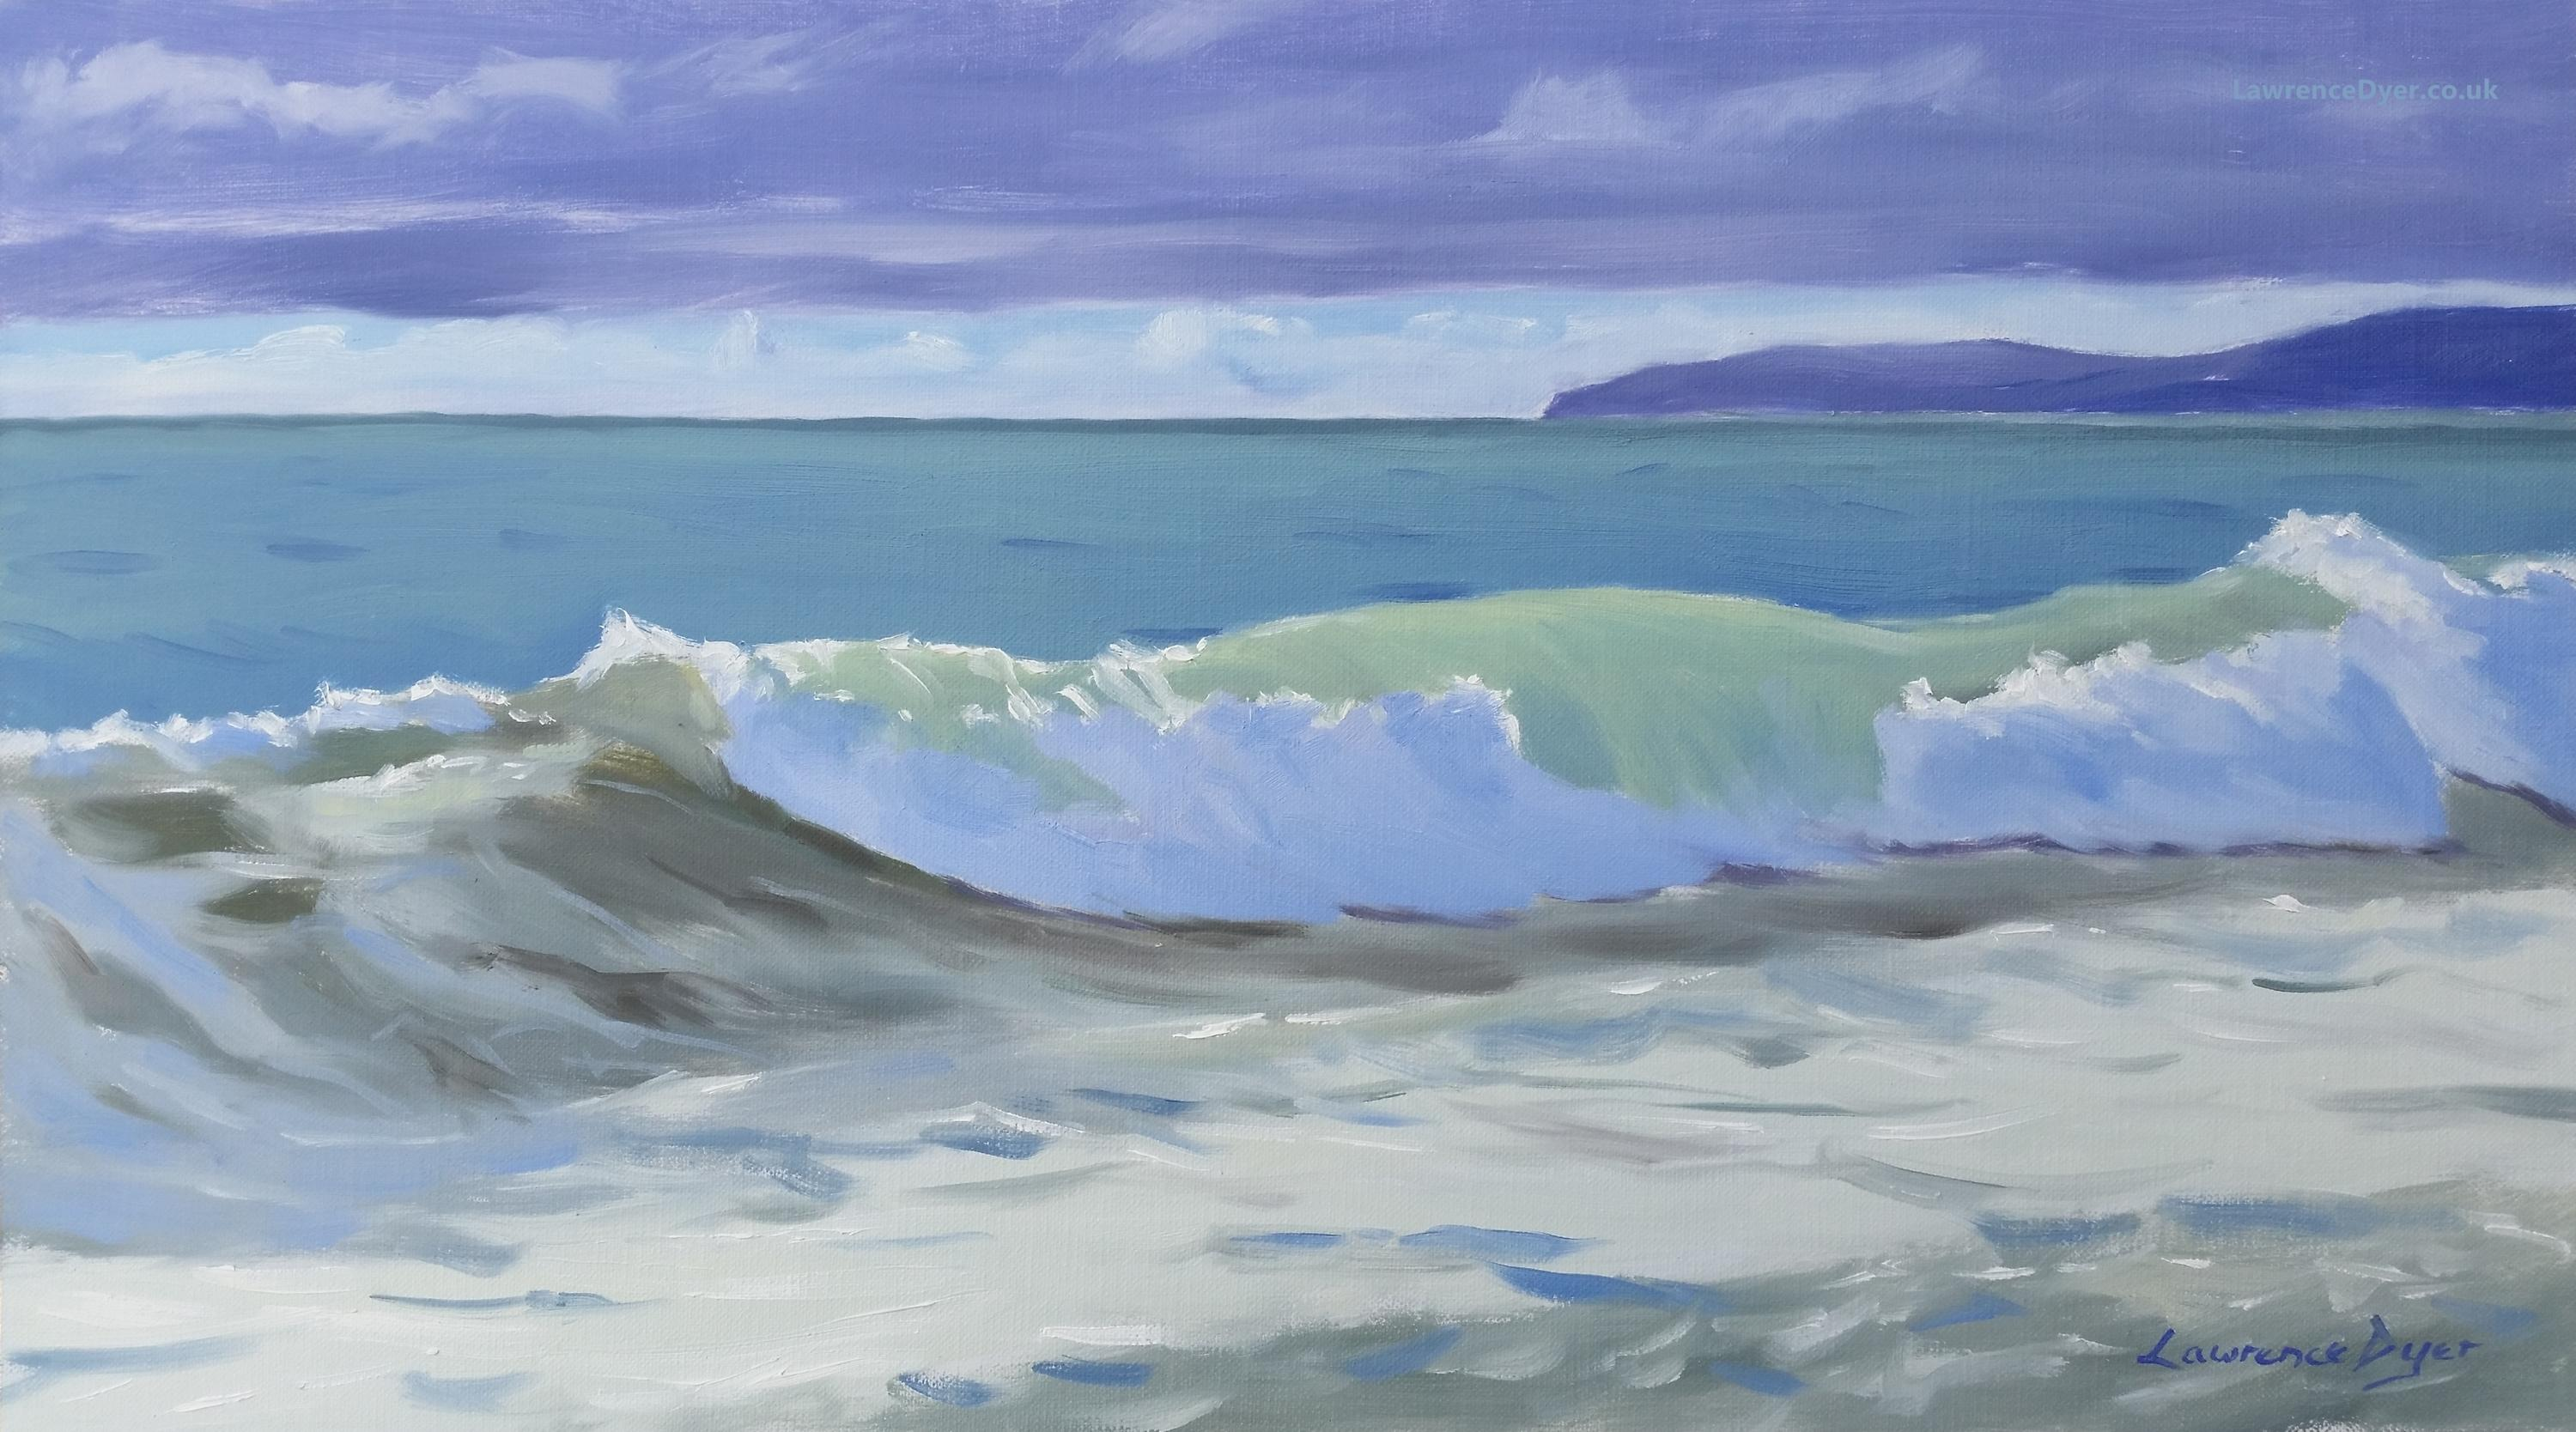 Green Jewel of a Wave by Lawrence Dyer